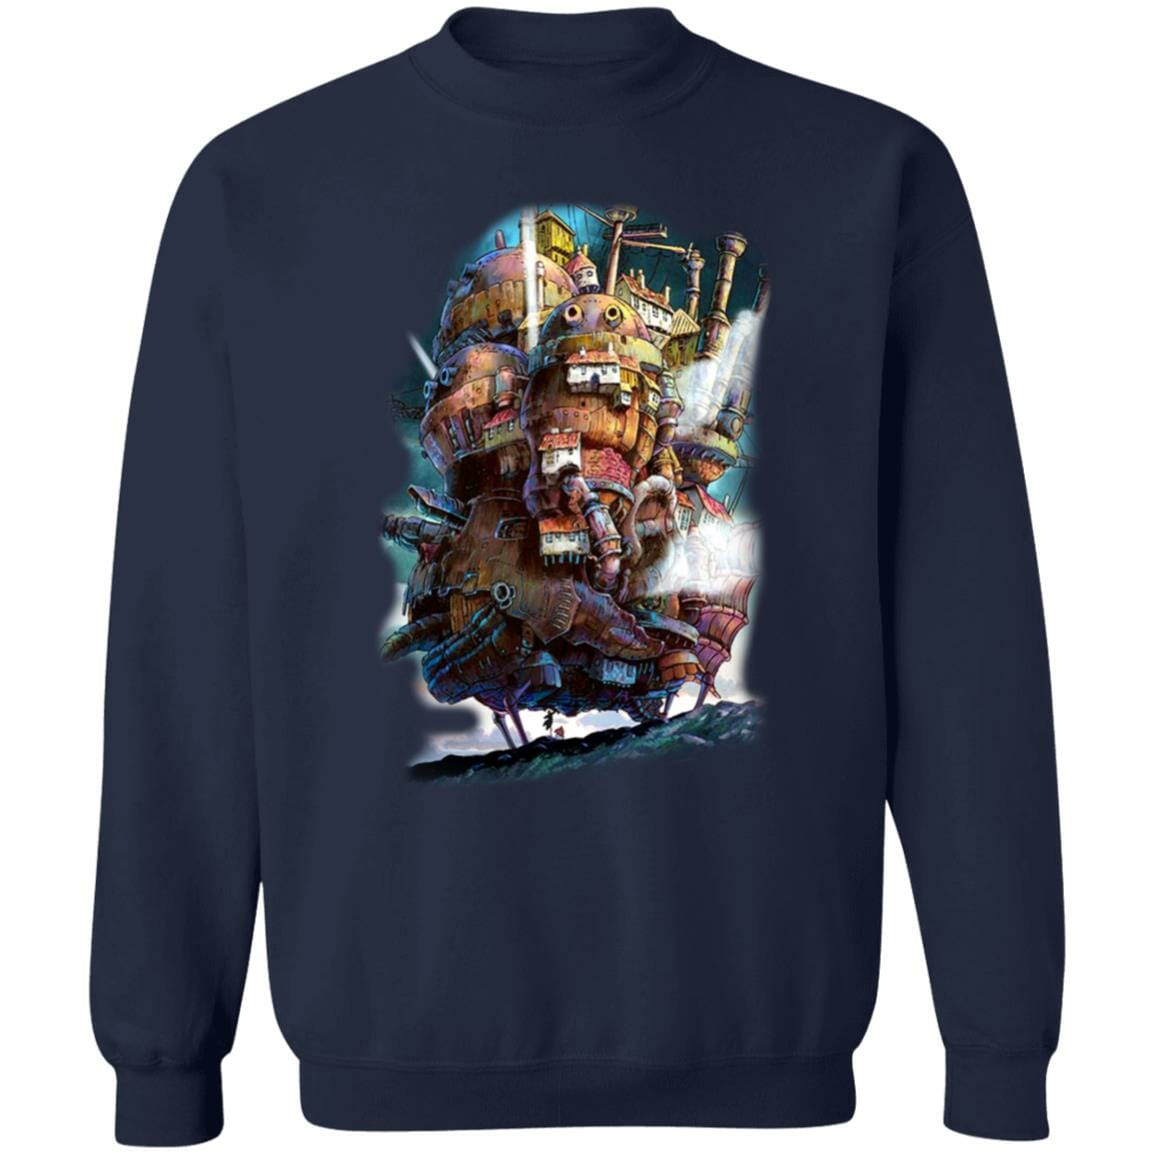 Howl's Moving Caslte on the Sky Sweatshirt